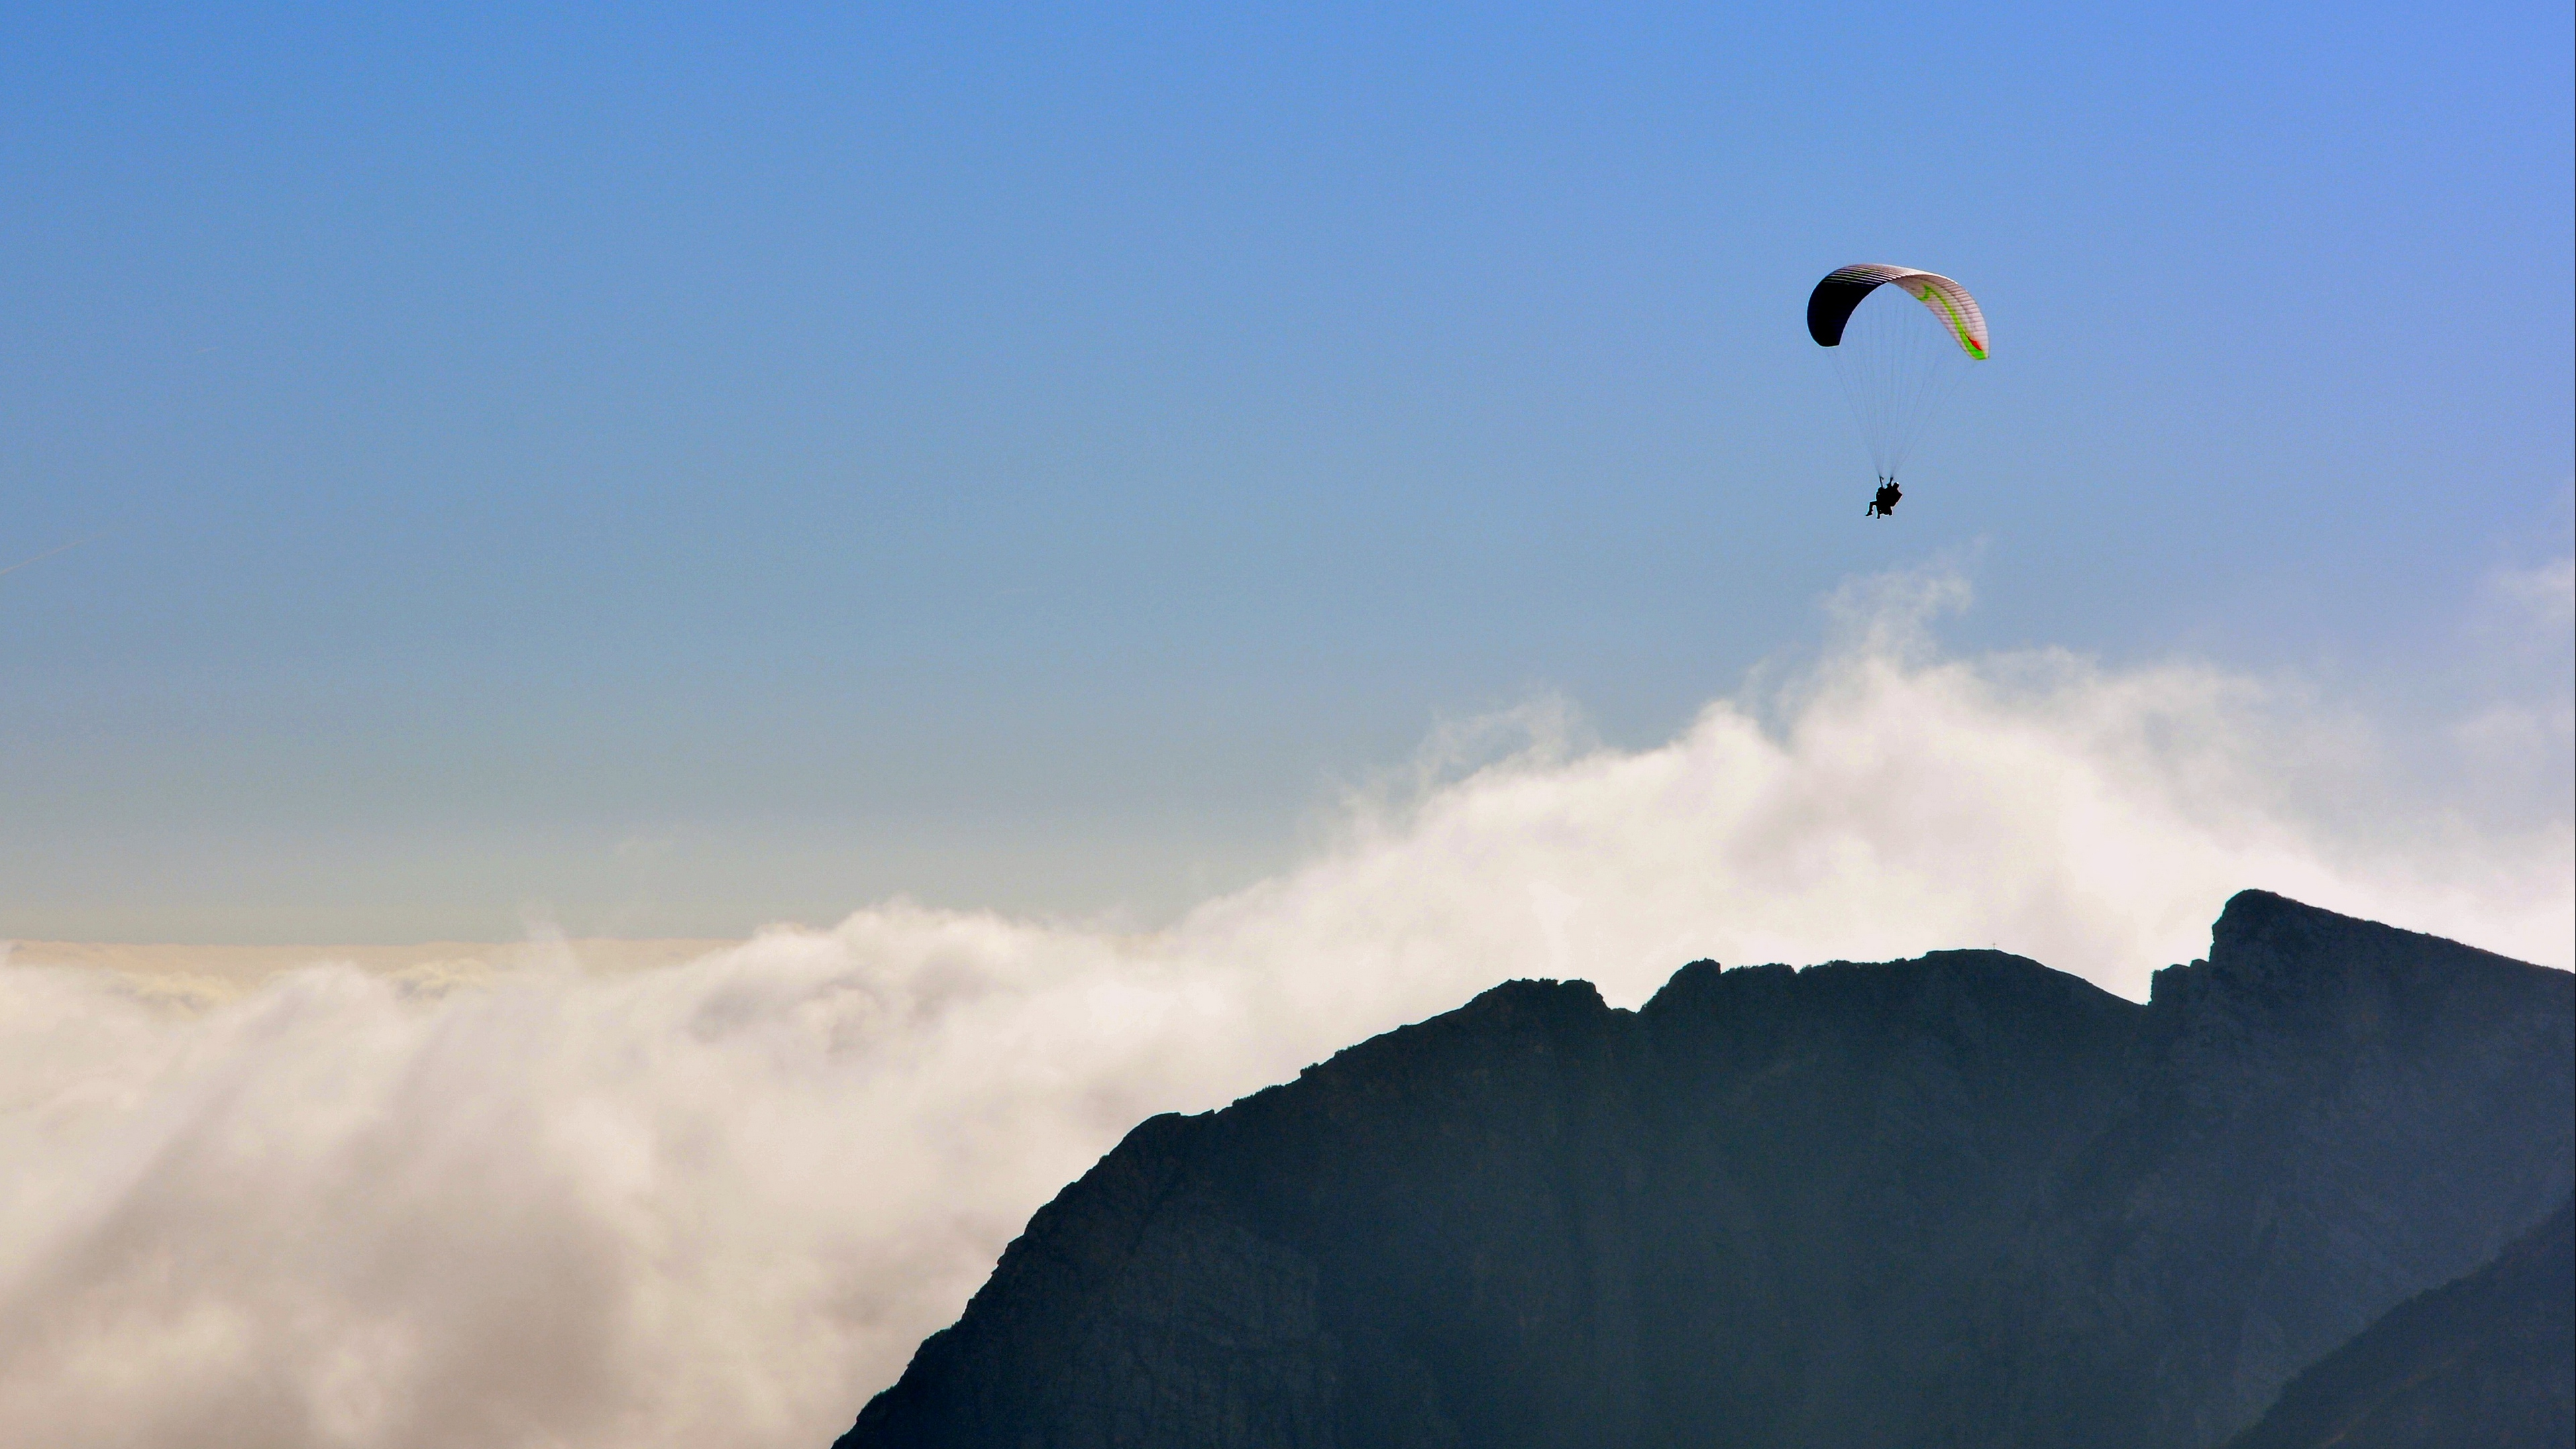 paraglider flying sky mountains extreme 4k 1540063076 - paraglider, flying, sky, mountains, extreme 4k - Sky, paraglider, Flying